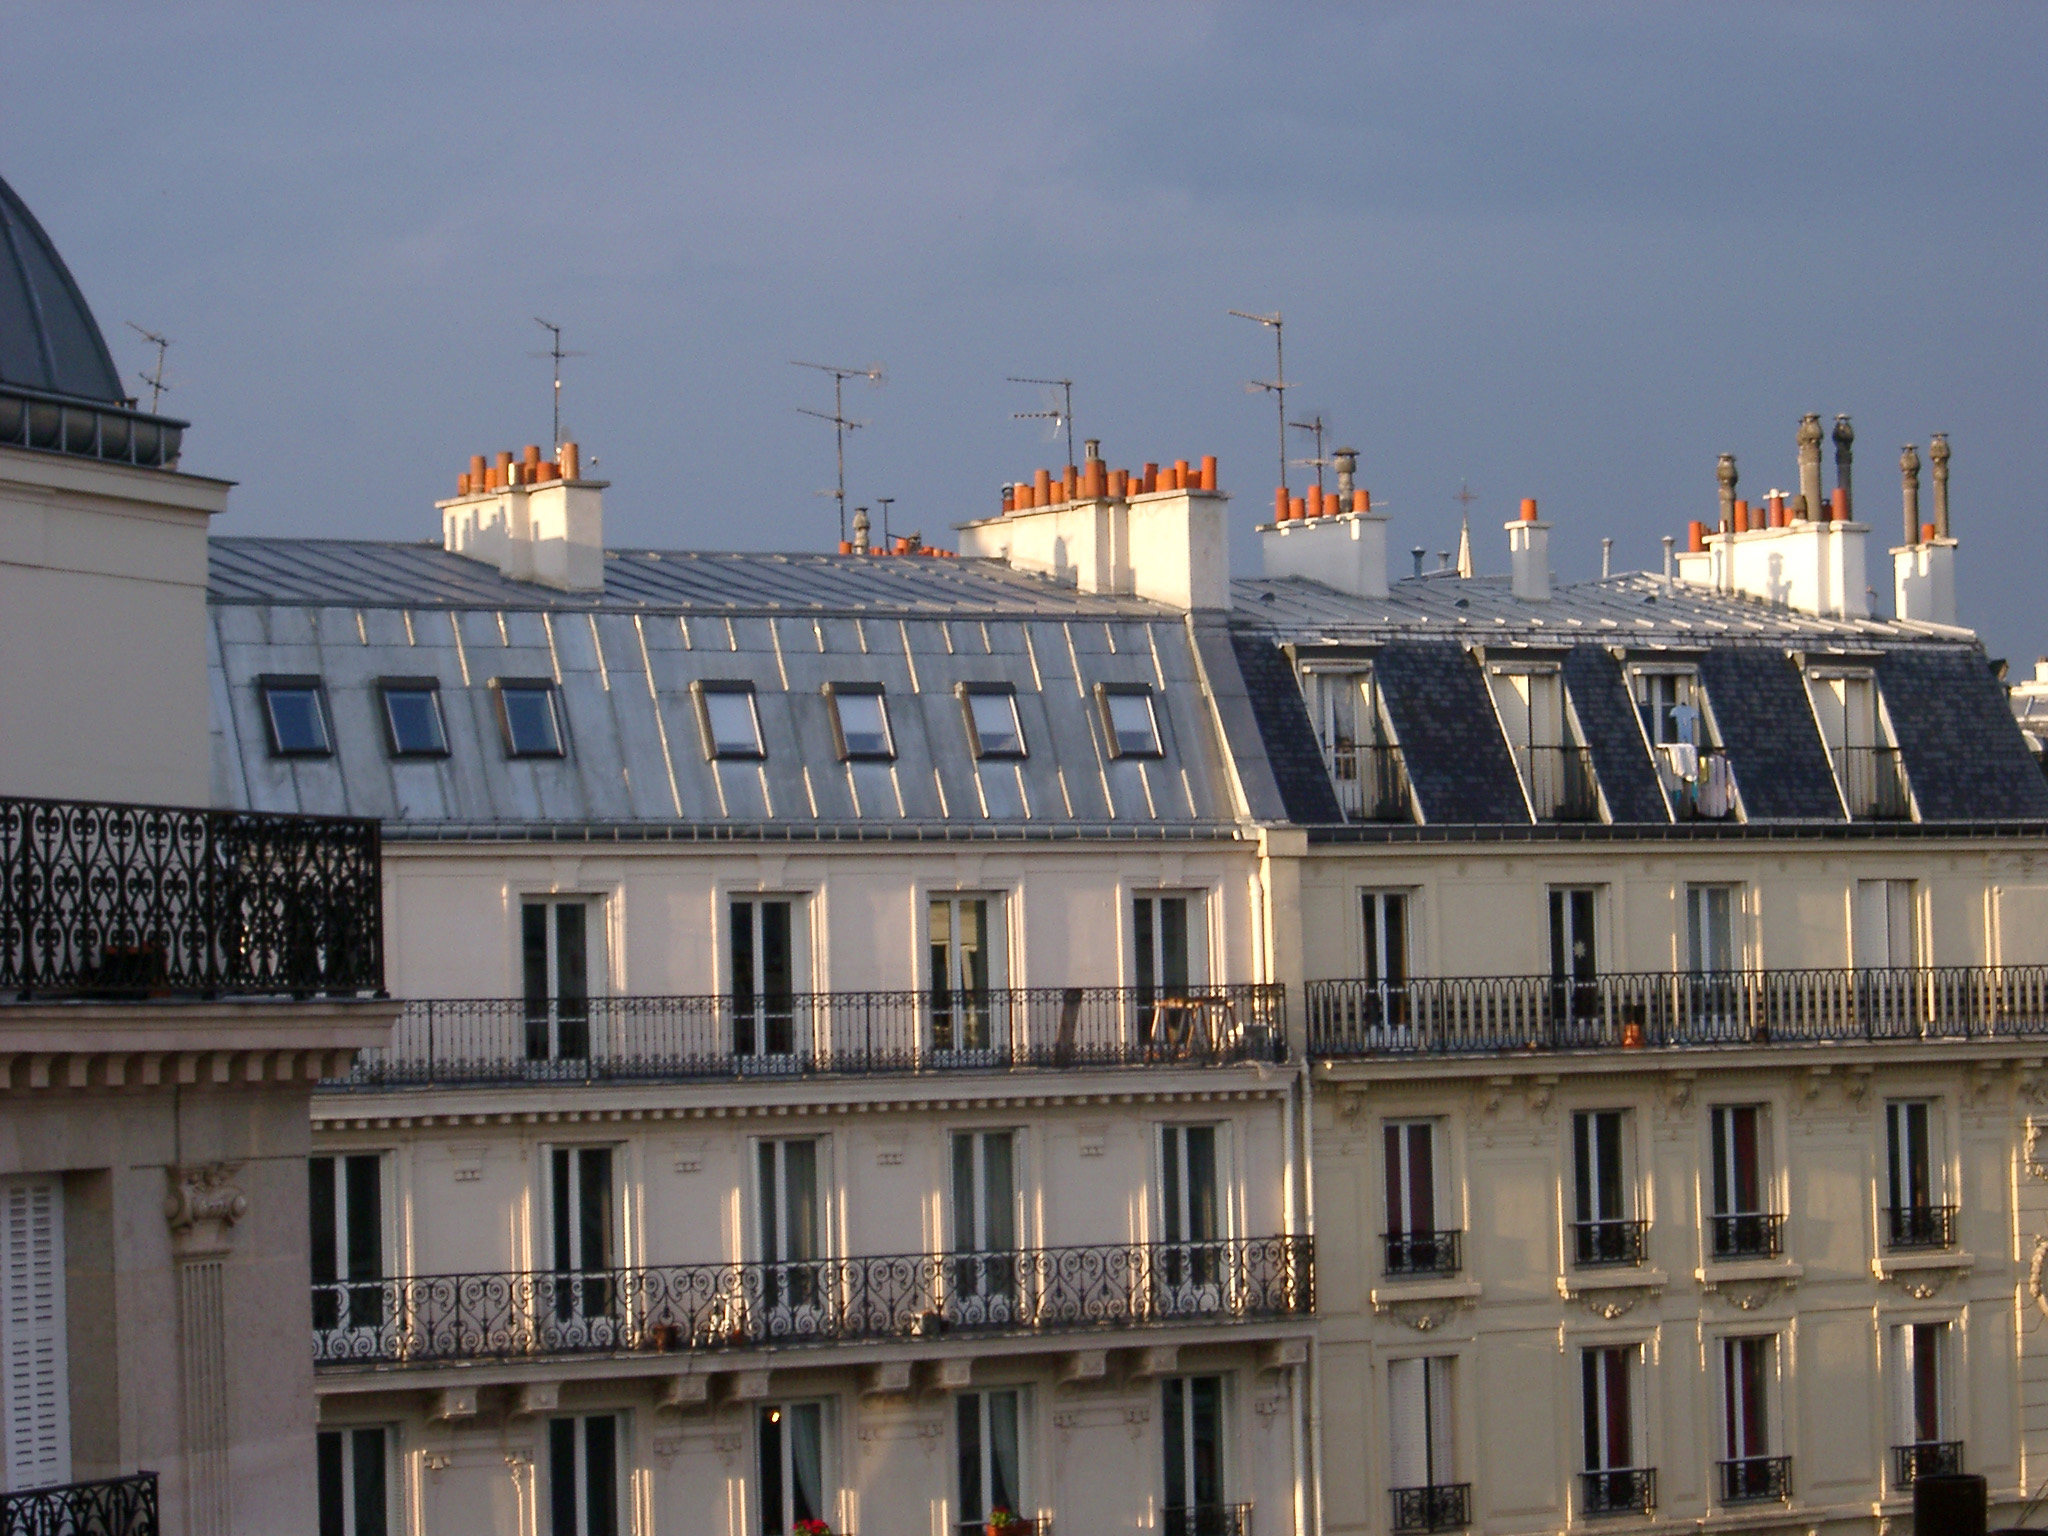 free stock photo of paris building rooftops in warm sunlight photoeverywhere. Black Bedroom Furniture Sets. Home Design Ideas